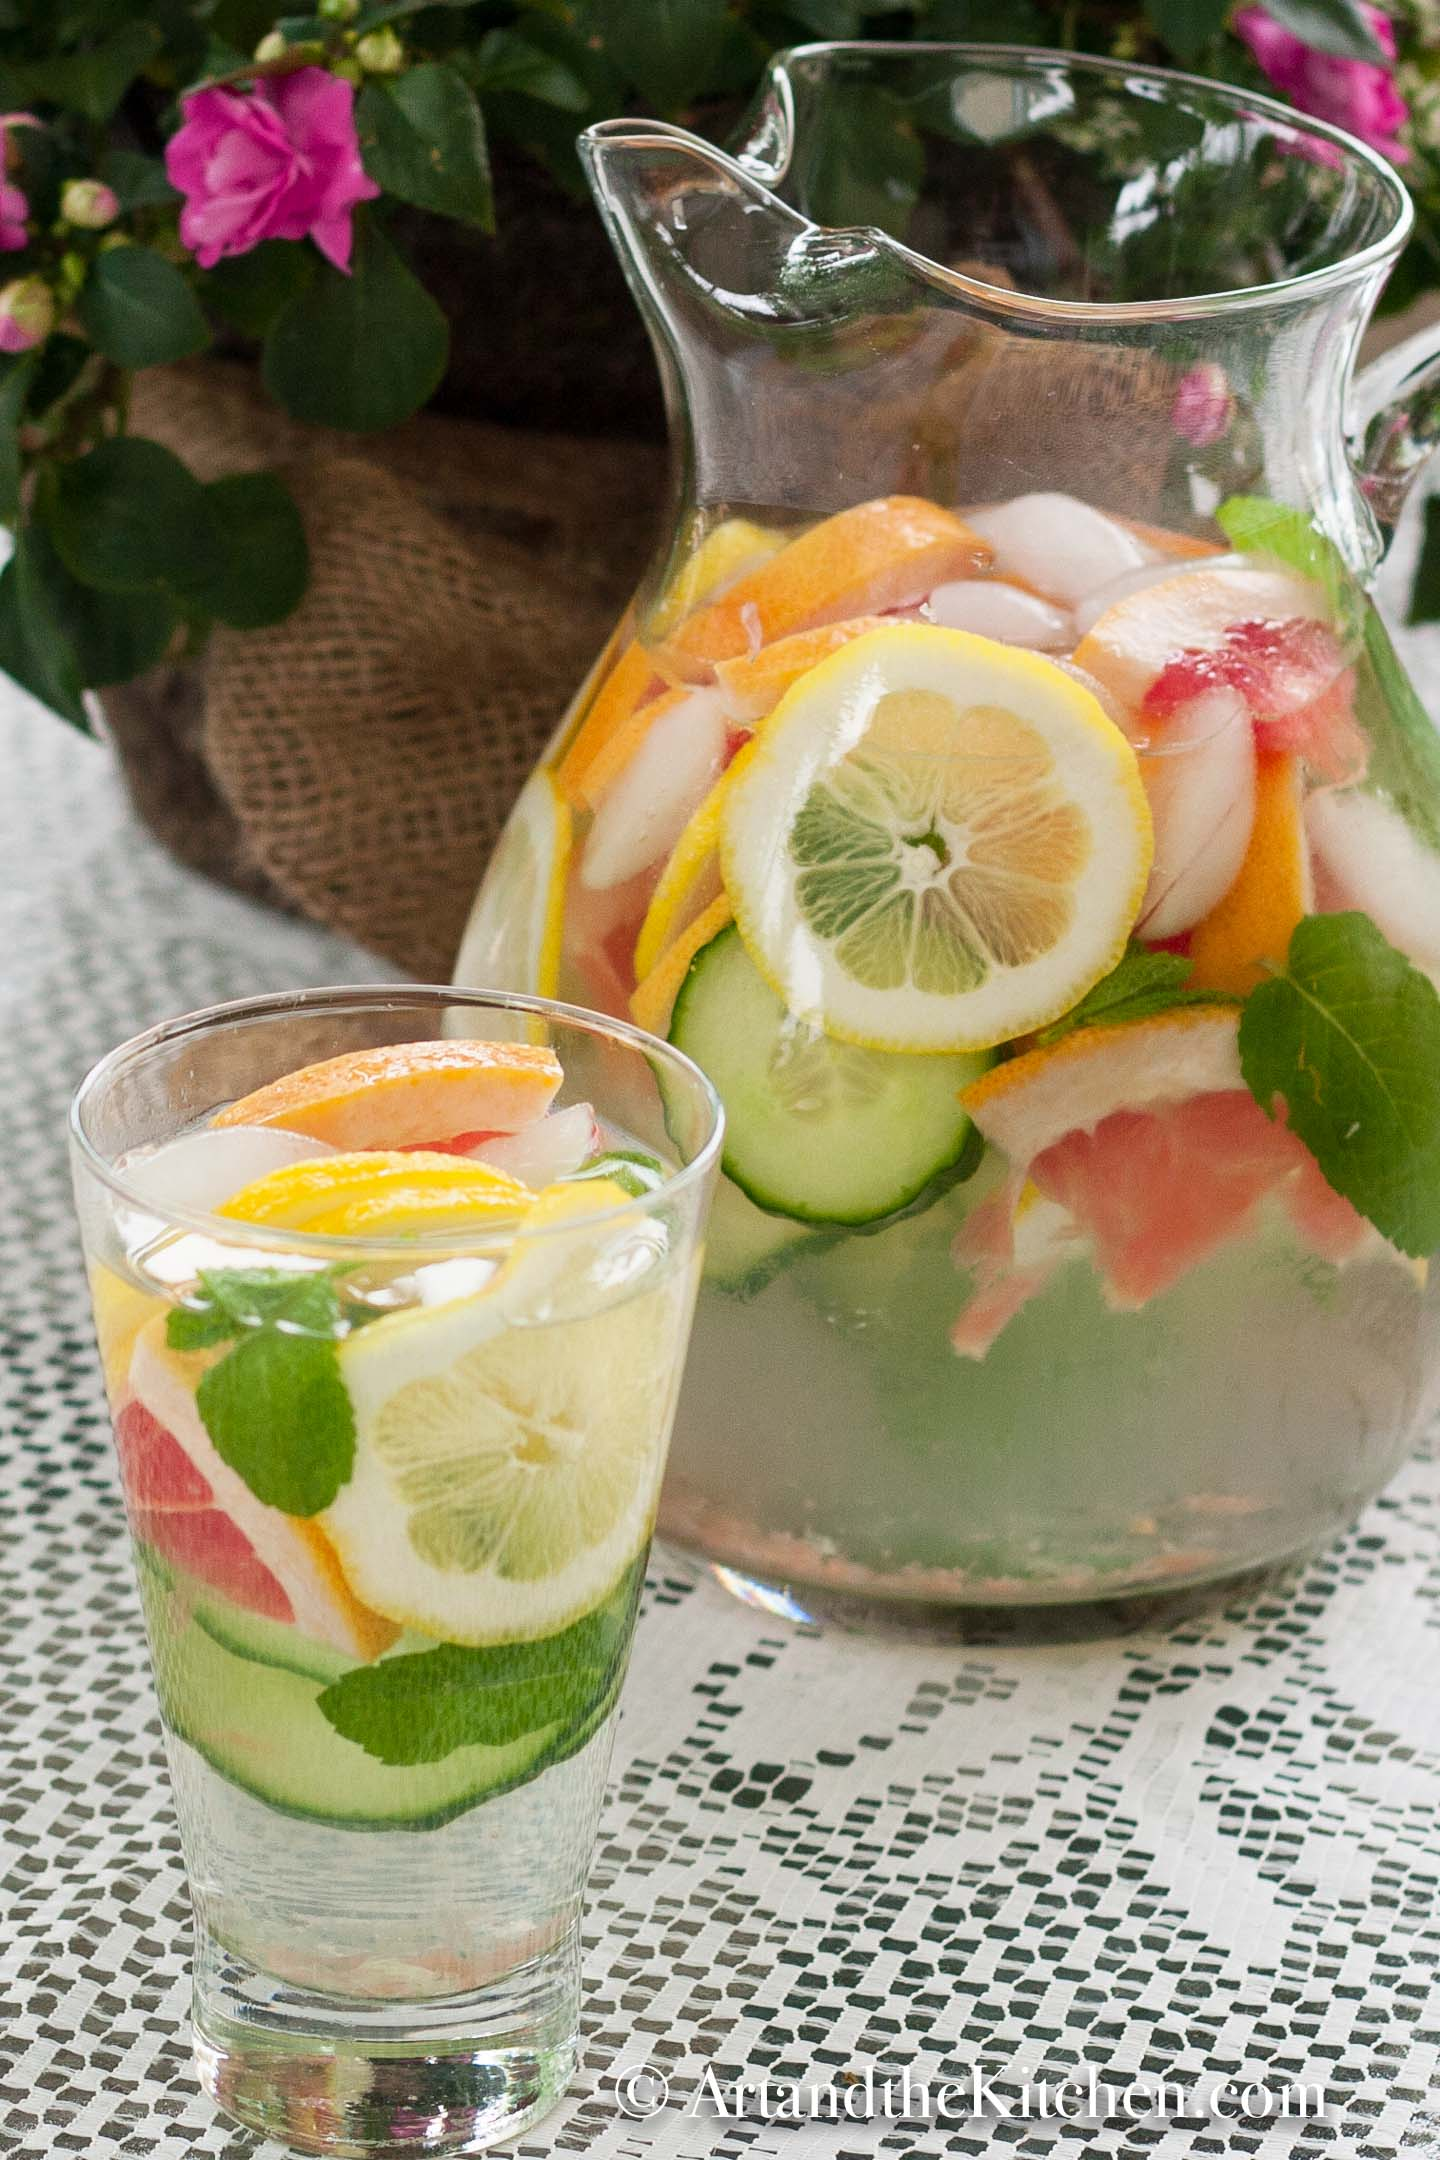 Glass pitcher and glass of water with slices of grapefruit, cucumber, lemon and mint.